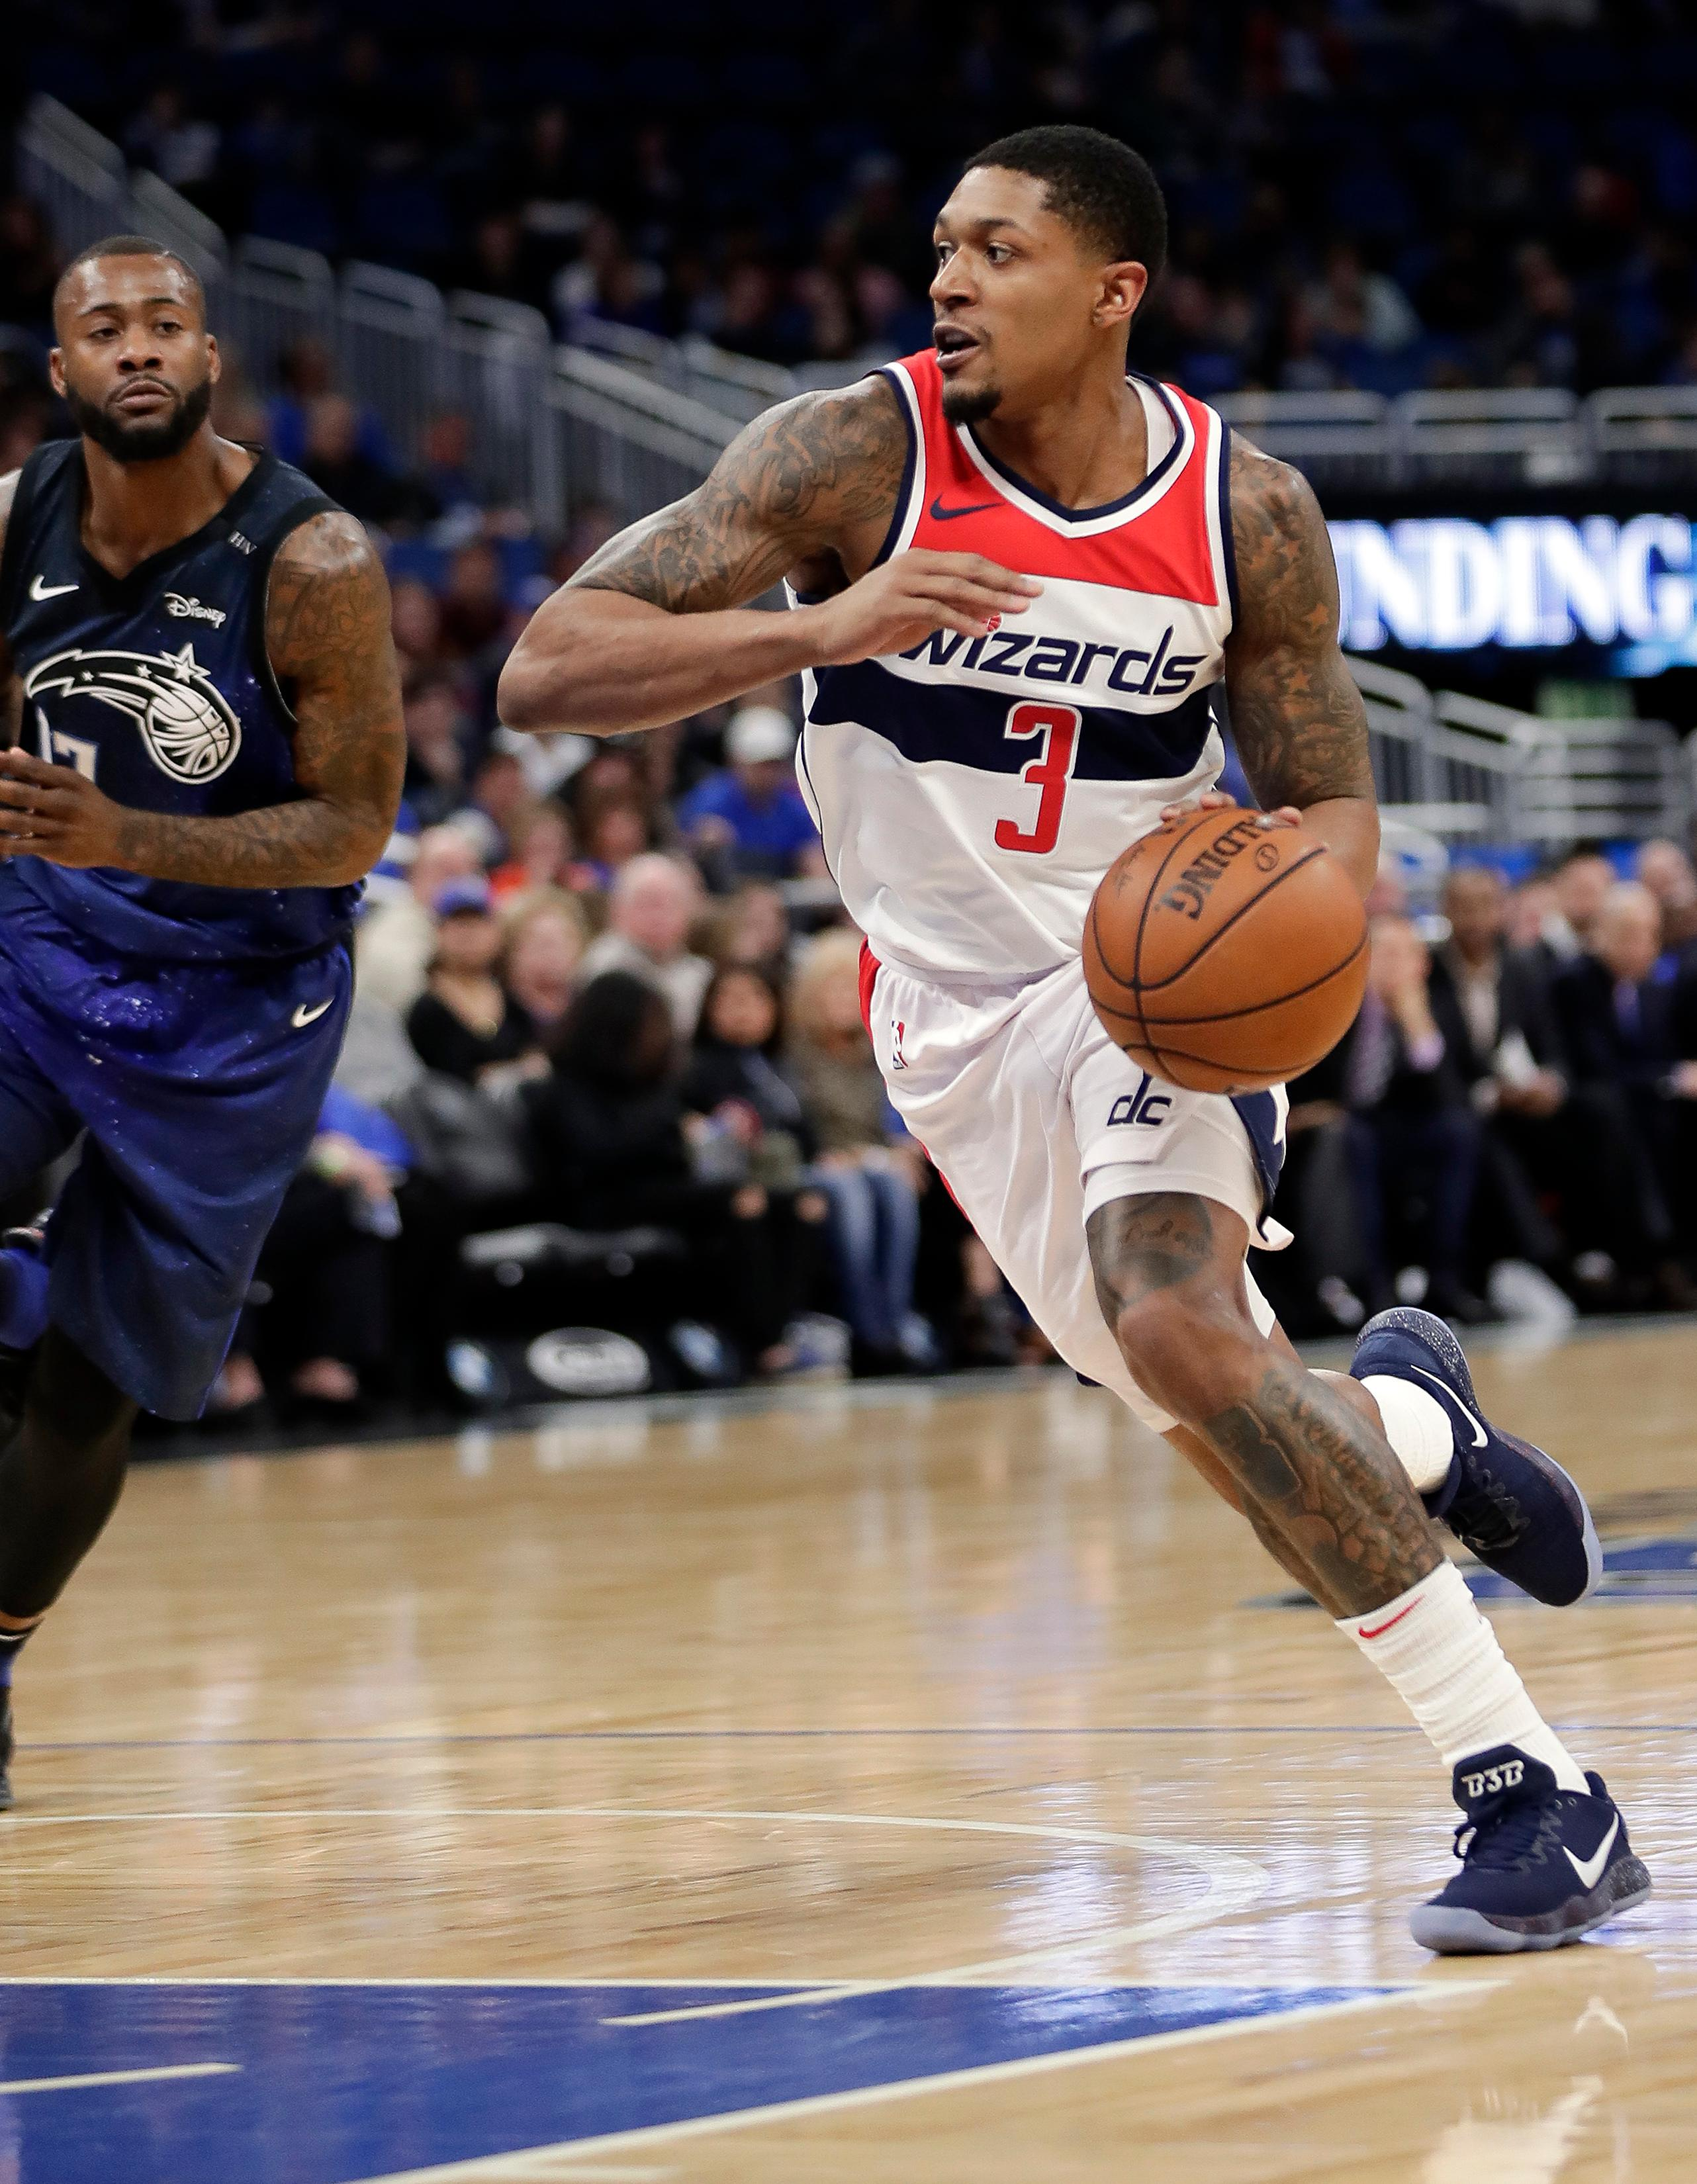 Washington Wizards' Bradley Beal (3) drives to the basket past Orlando Magic's Jonathon Simmons during the first half of an NBA basketball game Saturday, Feb. 3, 2018, in Orlando, Fla. (AP Photo/John Raoux)